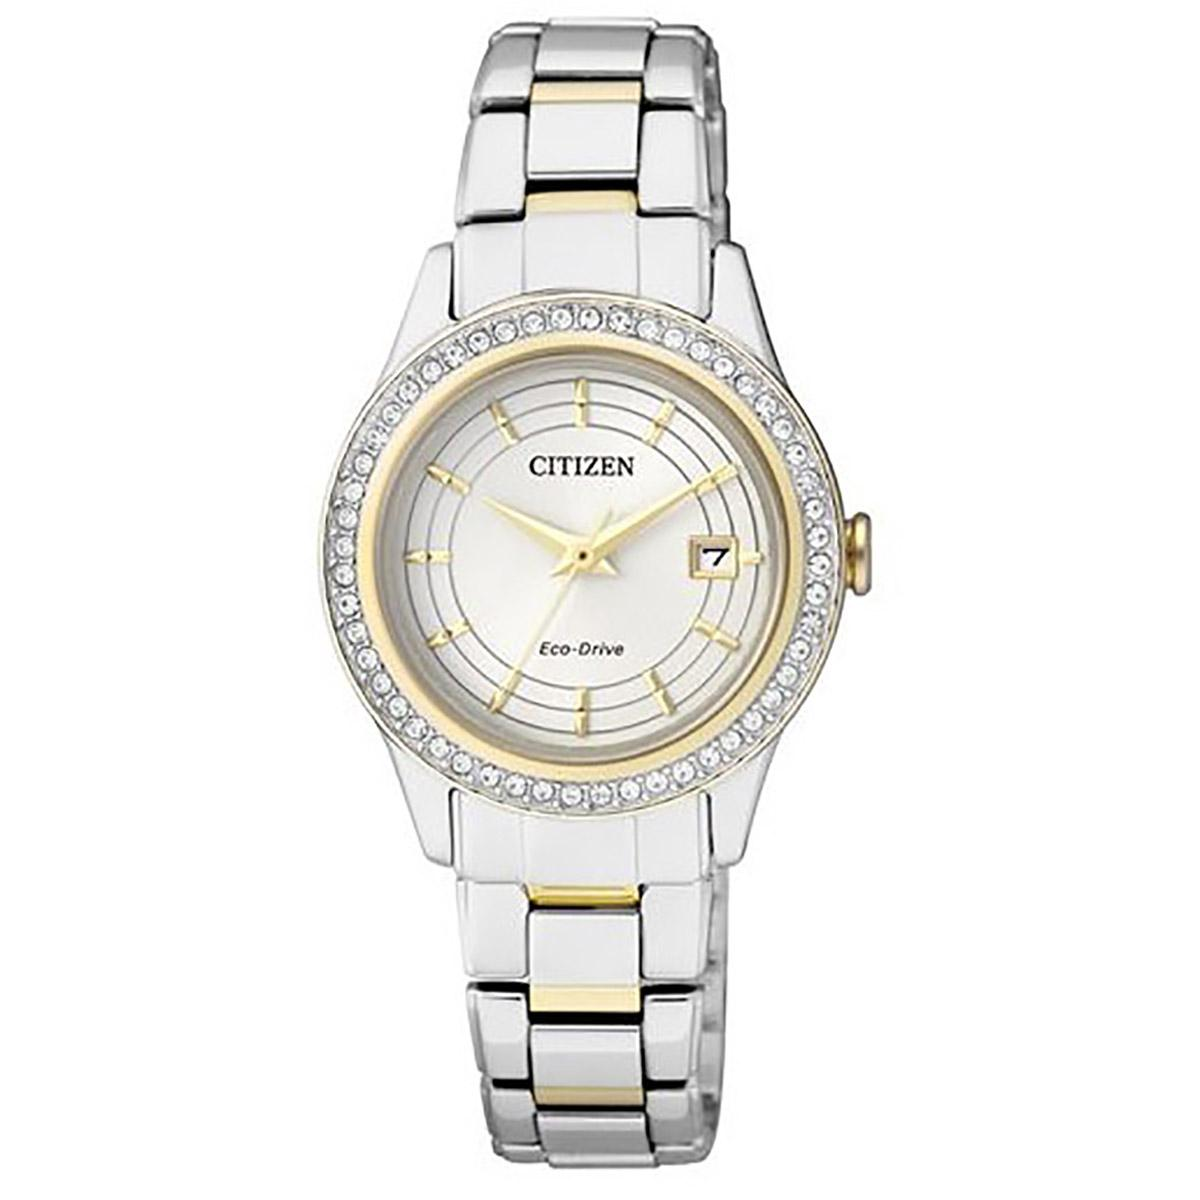 Citizen Citizen Eco Drive Multicolored Stainless Steel Case Two Tone Stainless Steel Bracelet Ladies Fe1124 82A Review